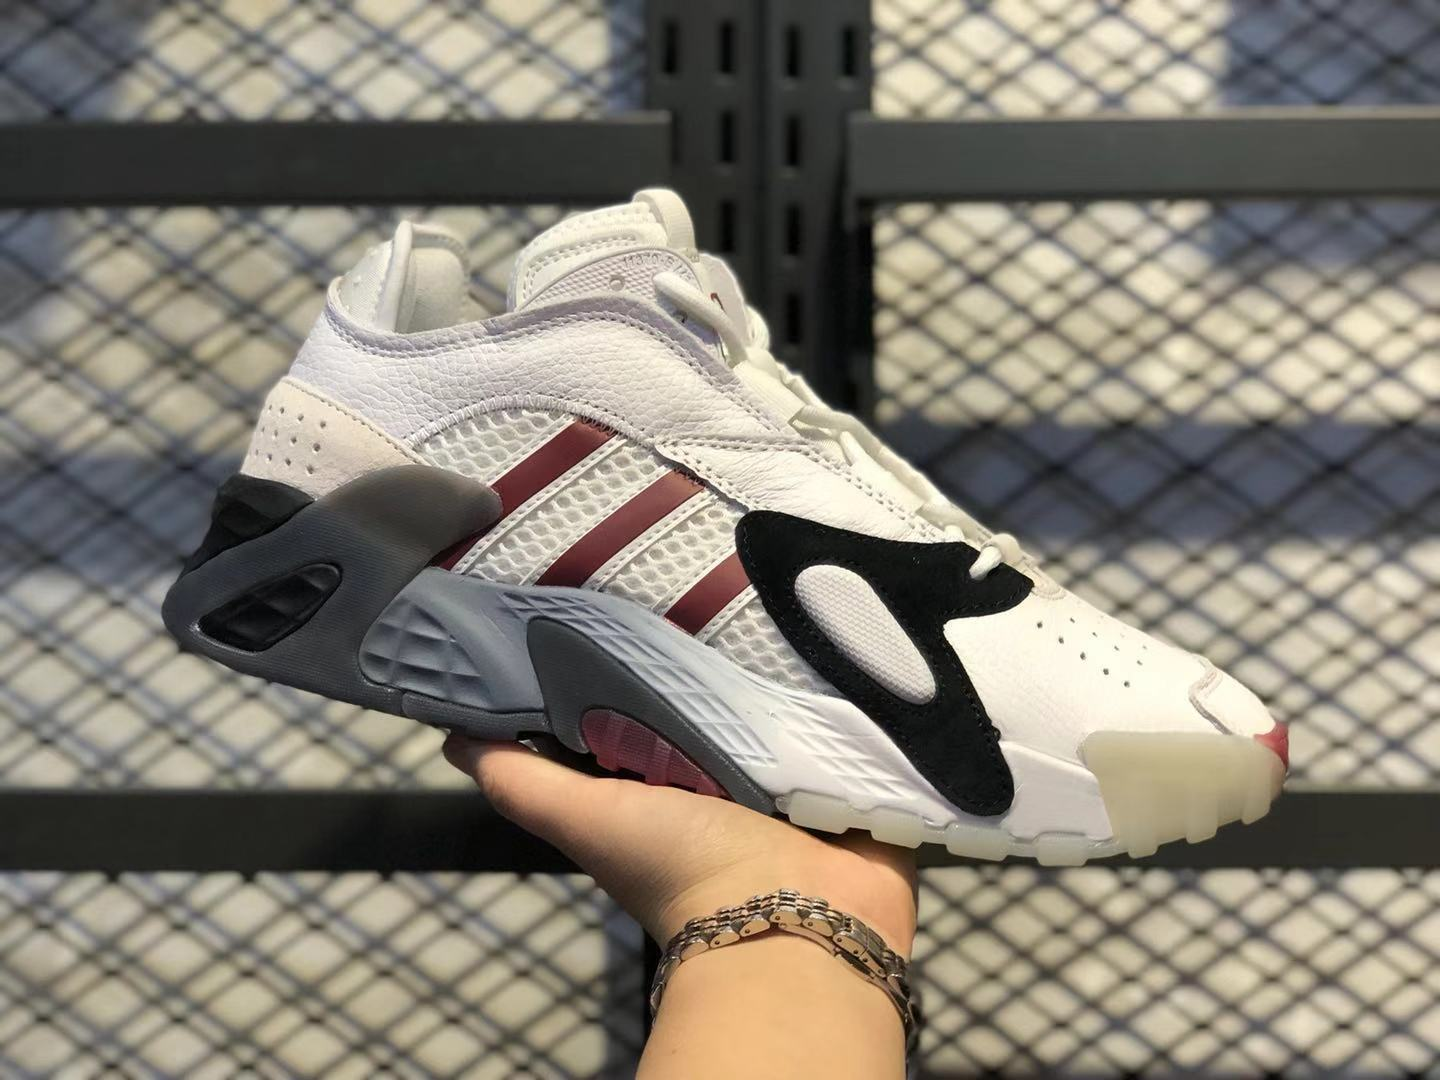 Adidas Streetball White/Black-Wine Red Men's Sneakers To Buy EE5925